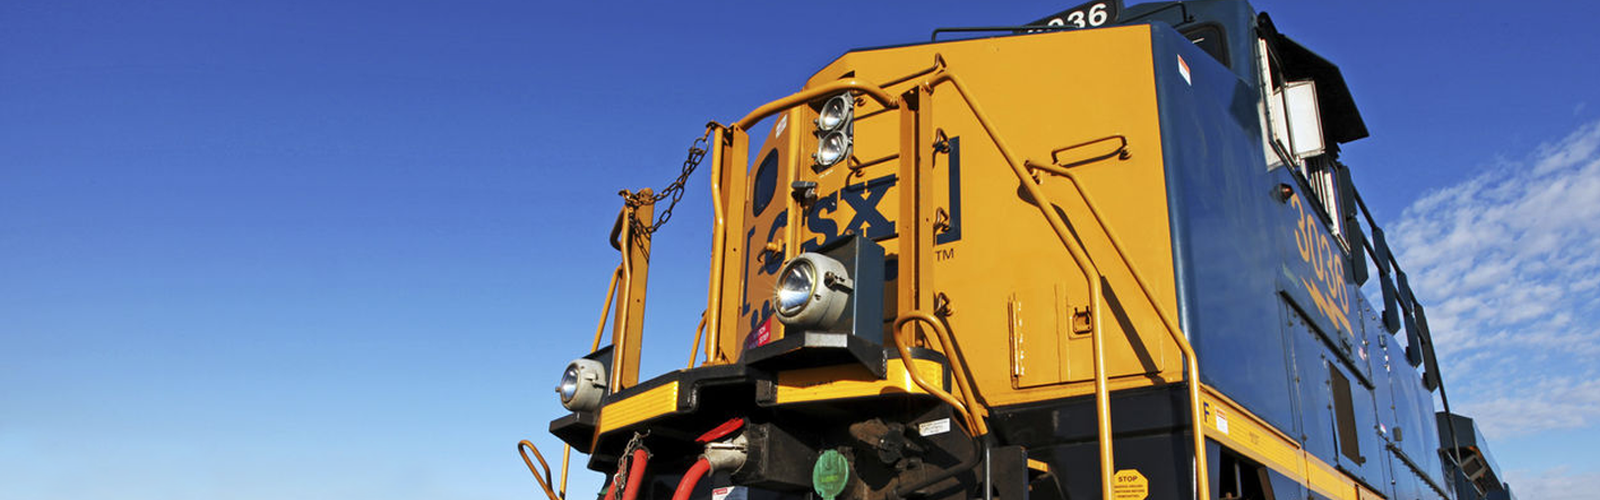 CSX: Shipments Need To Improve To Save Q3 Earnings